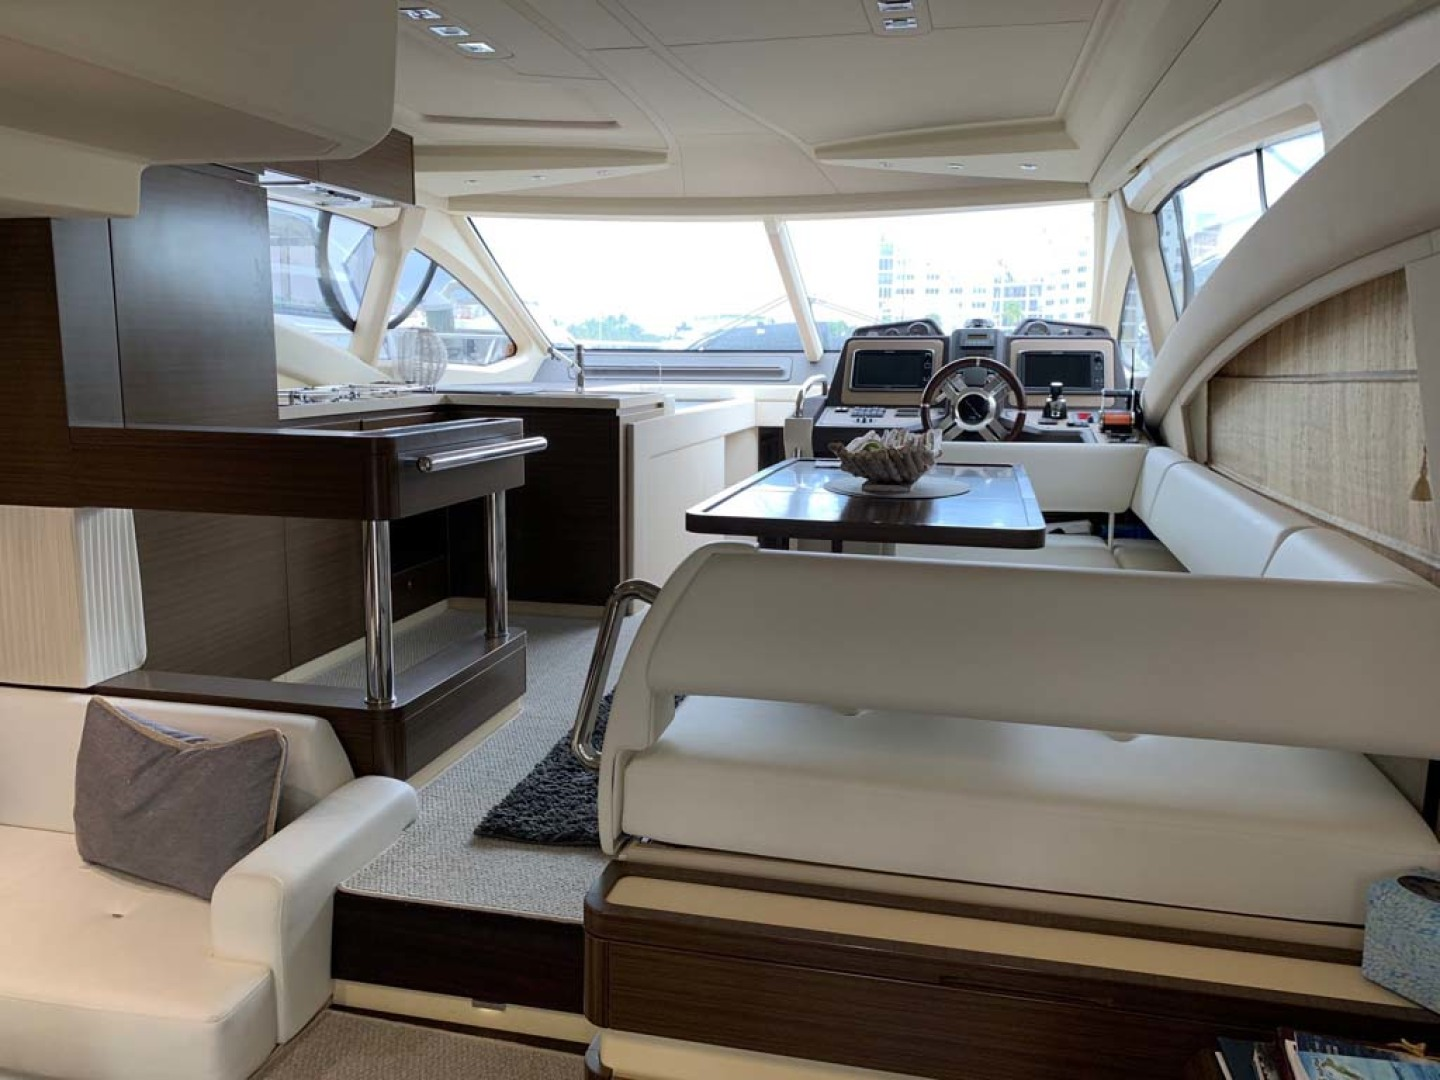 Azimut-54 Flybridge 2014-Suits Fort Lauderdale-Florida-United States-Salon View To Dining, Galley And Lower Helm-1292160 | Thumbnail